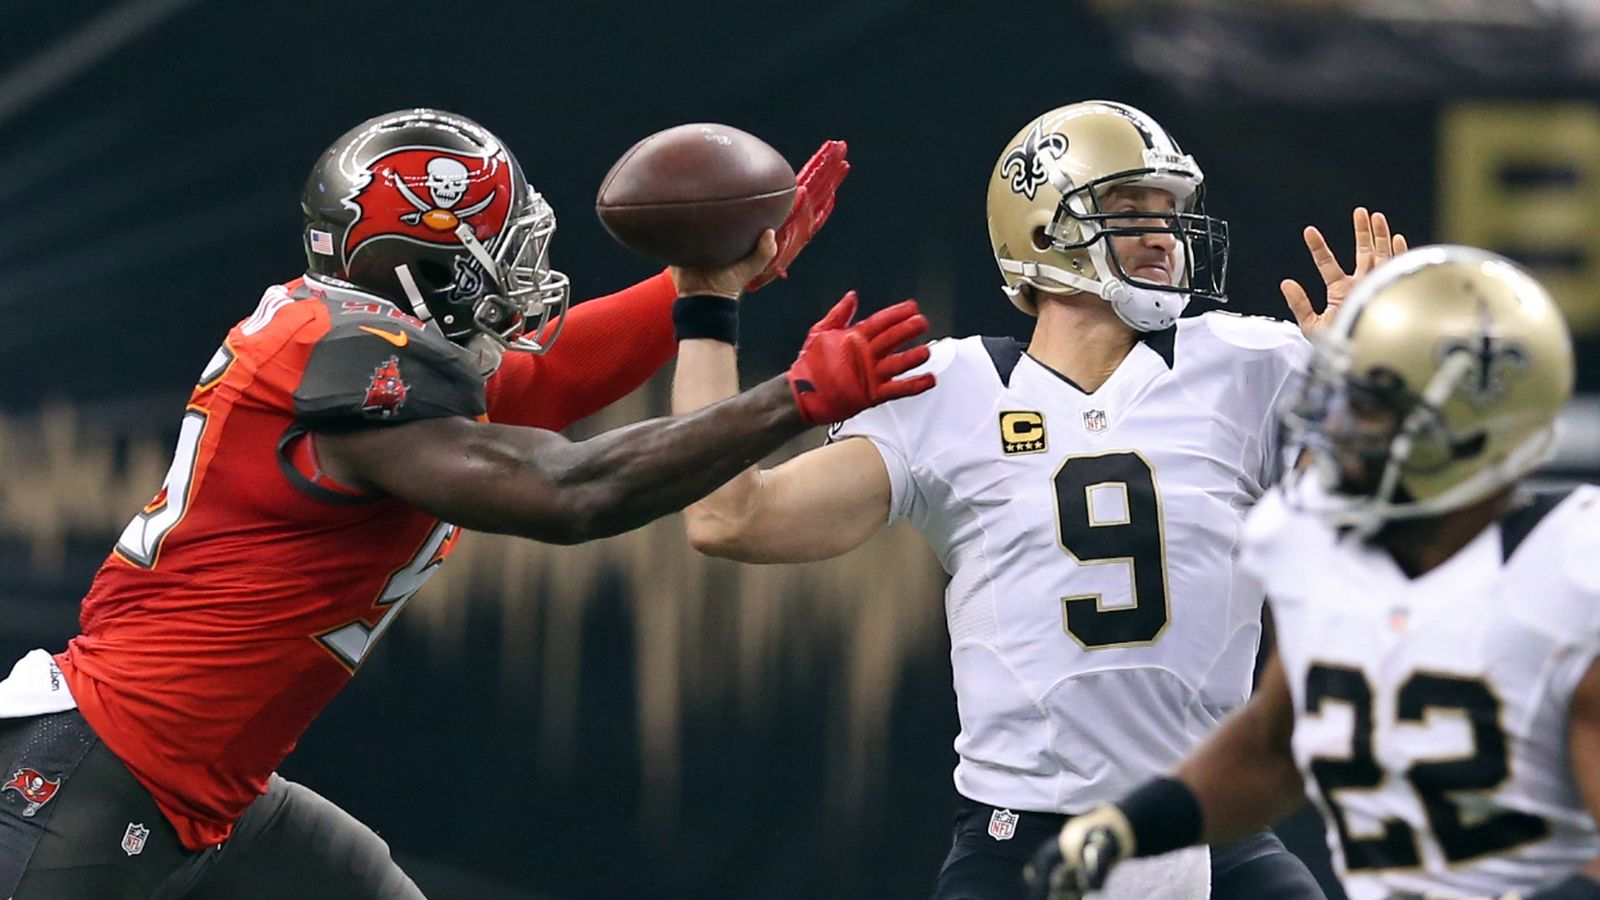 injured drew brees making it hard for new orleans nfl 2015